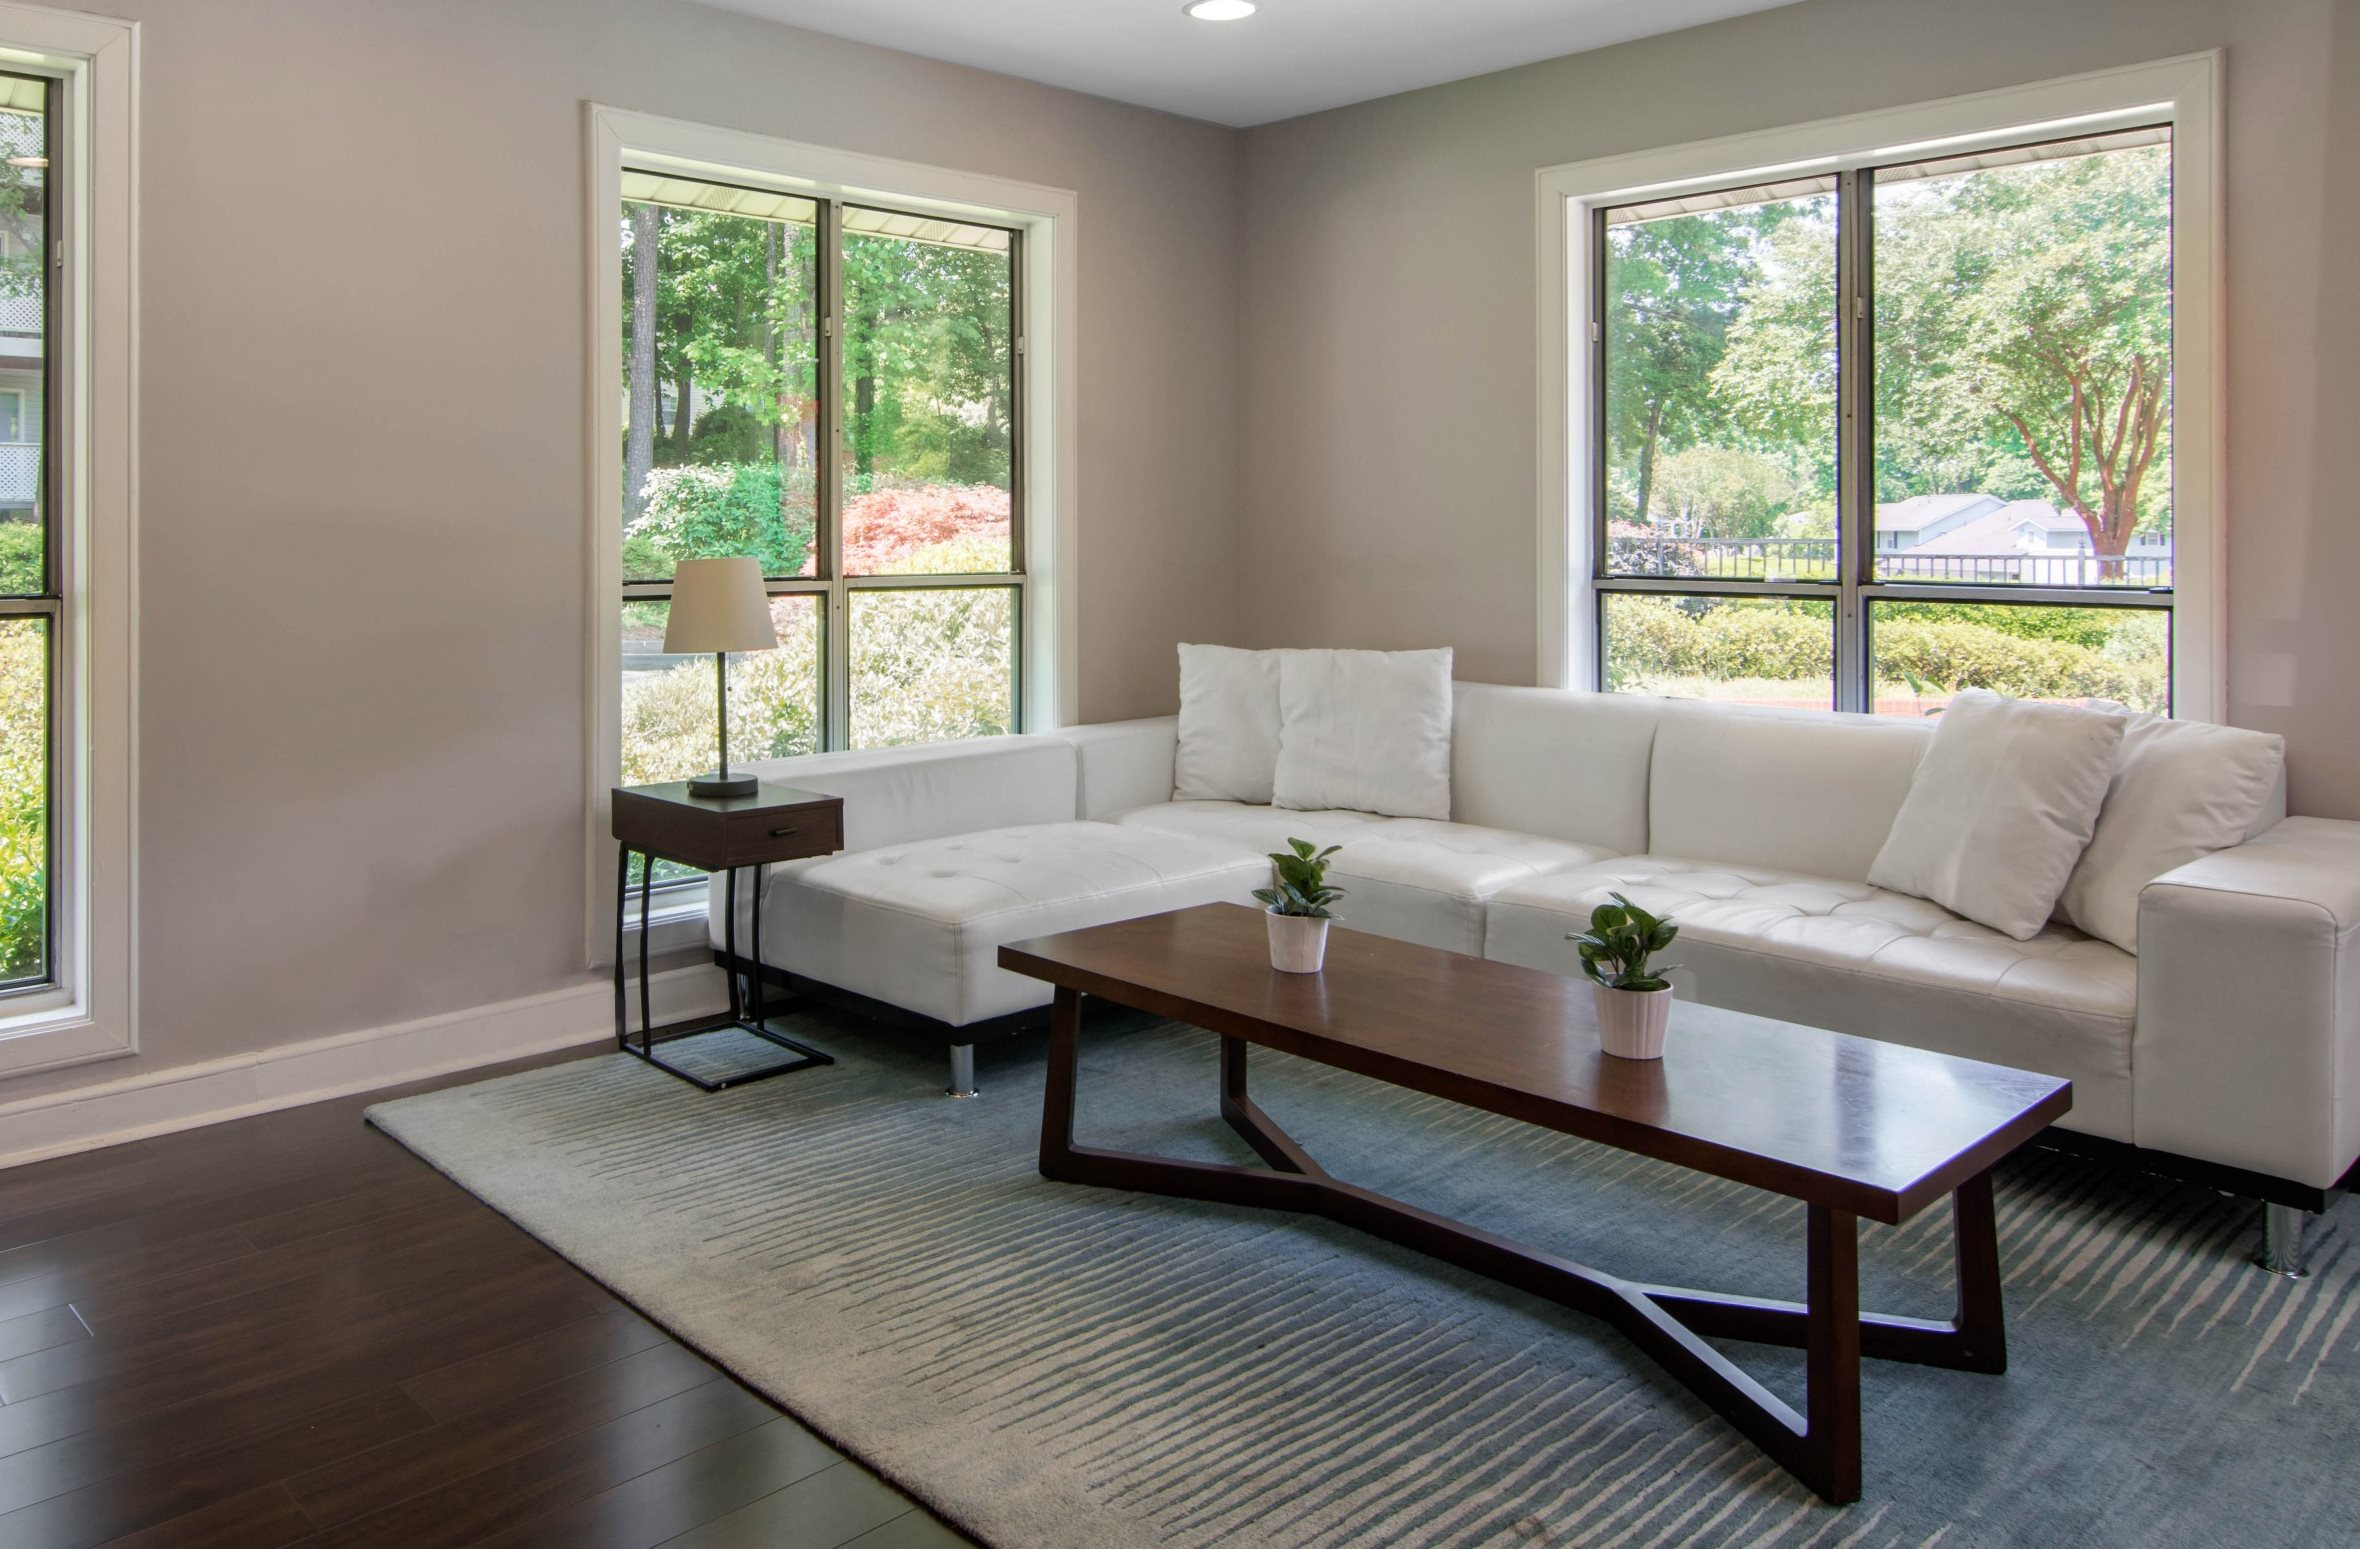 Dunwoody village apartment homes apartments in atlanta ga - 1 bedroom apartments in dunwoody ga ...